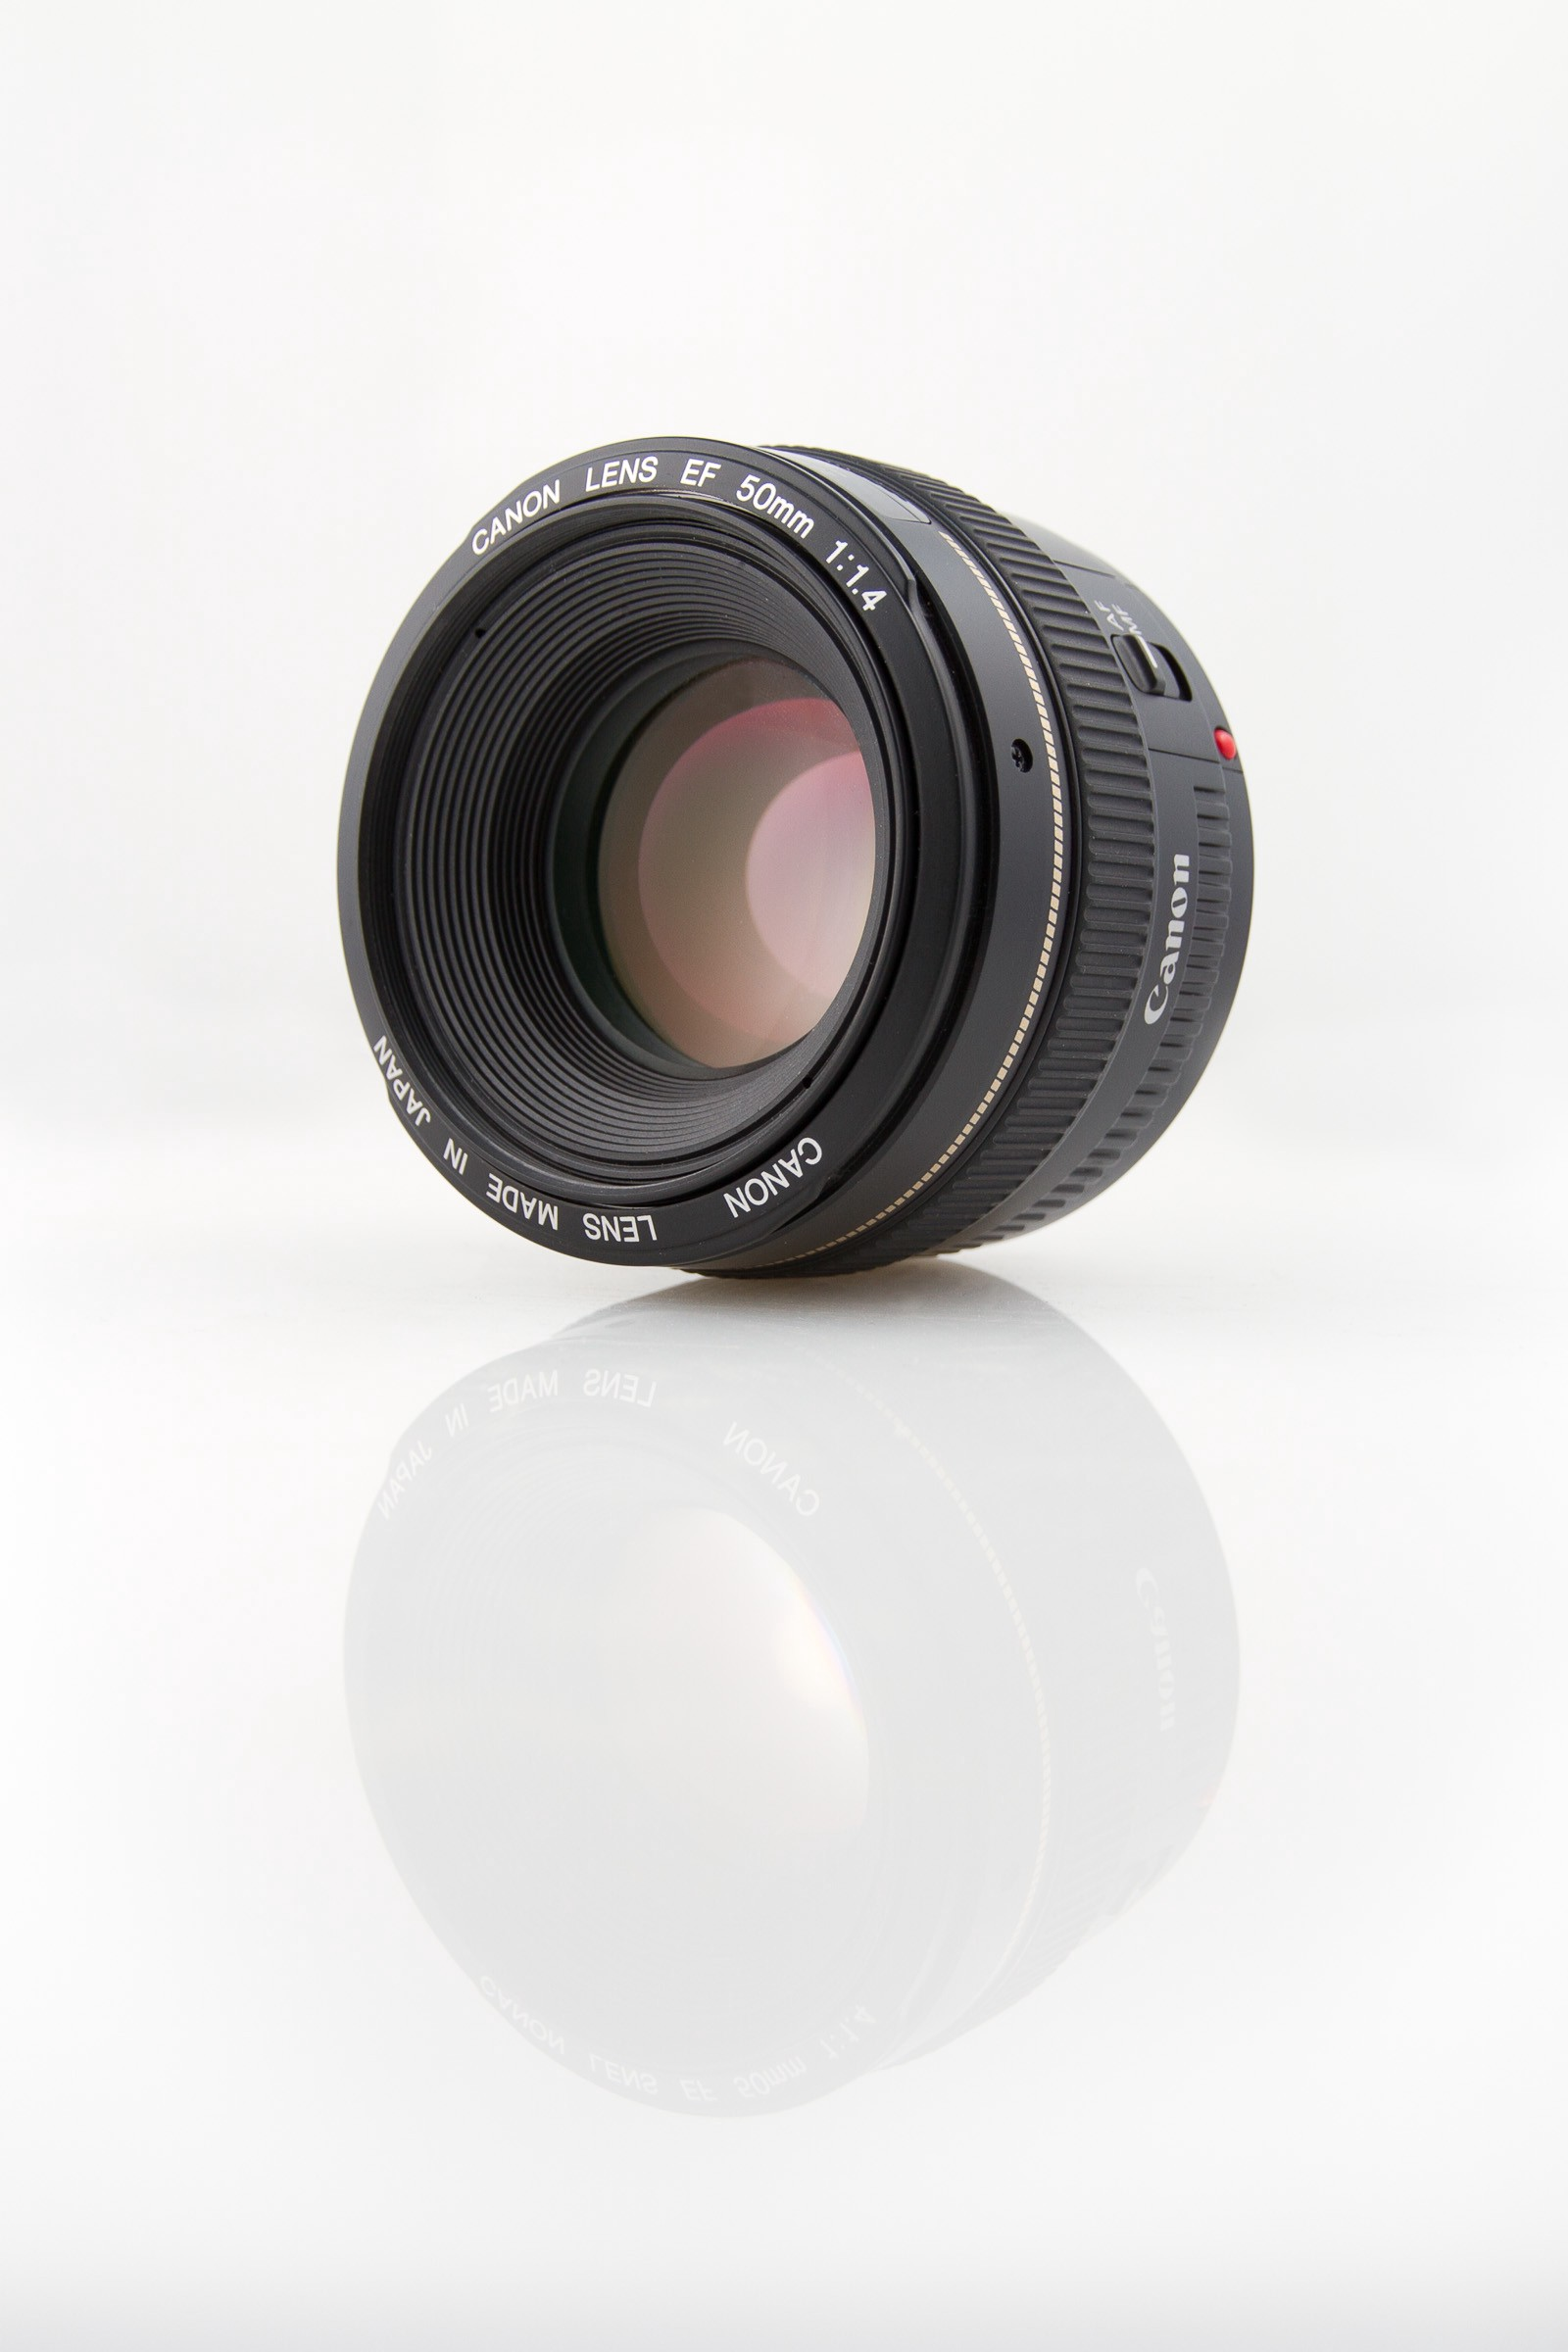 My Favourite Lens By Far: The Nifty Fifty – Learning DSLR